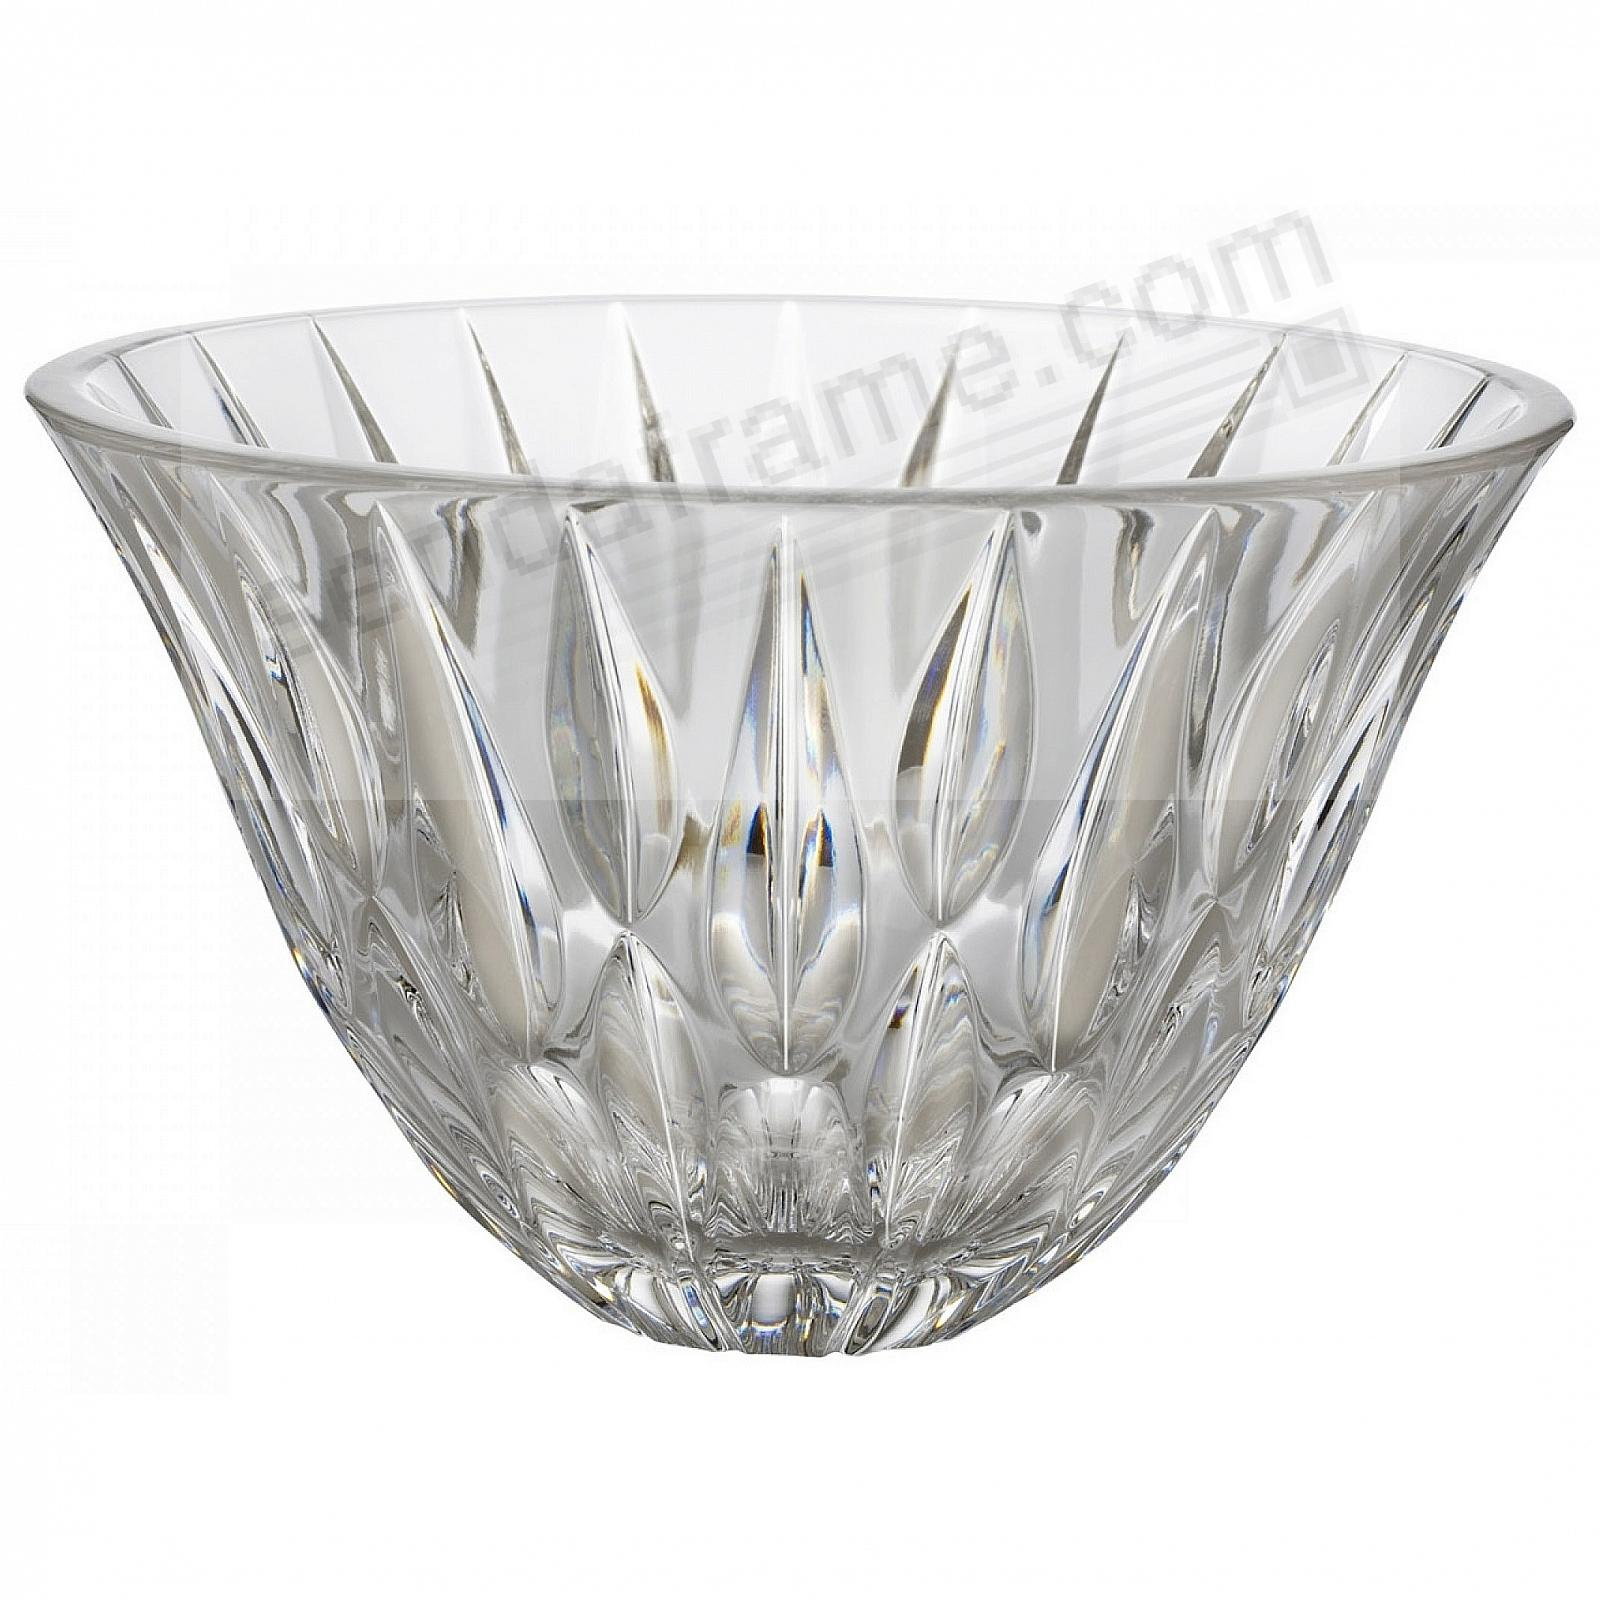 The Original RAINFALL 8-inch Crystal Marquis by Waterford® Bowl